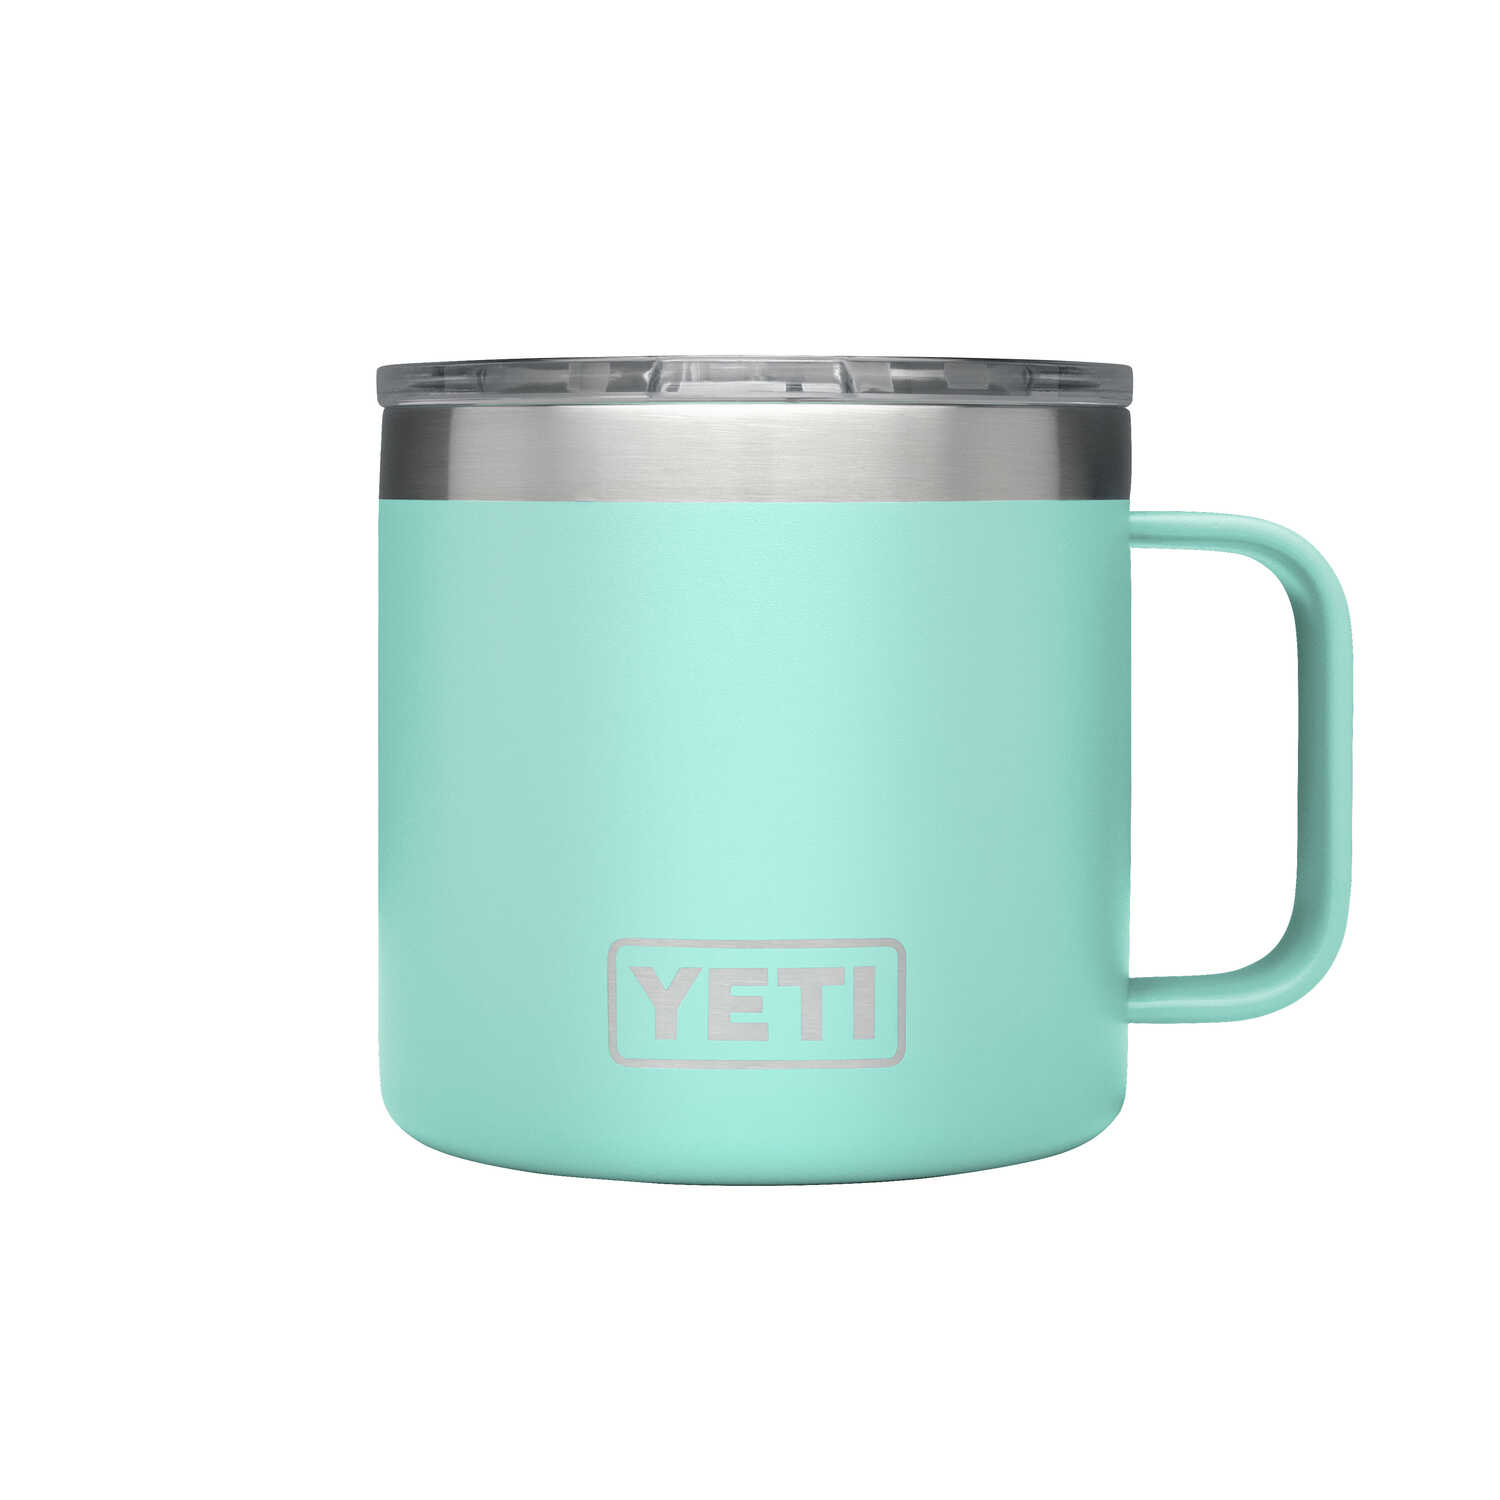 YETI  Rambler  Seafoam Green  Stainless Steel  BPA Free Insulated Mug  14 oz.